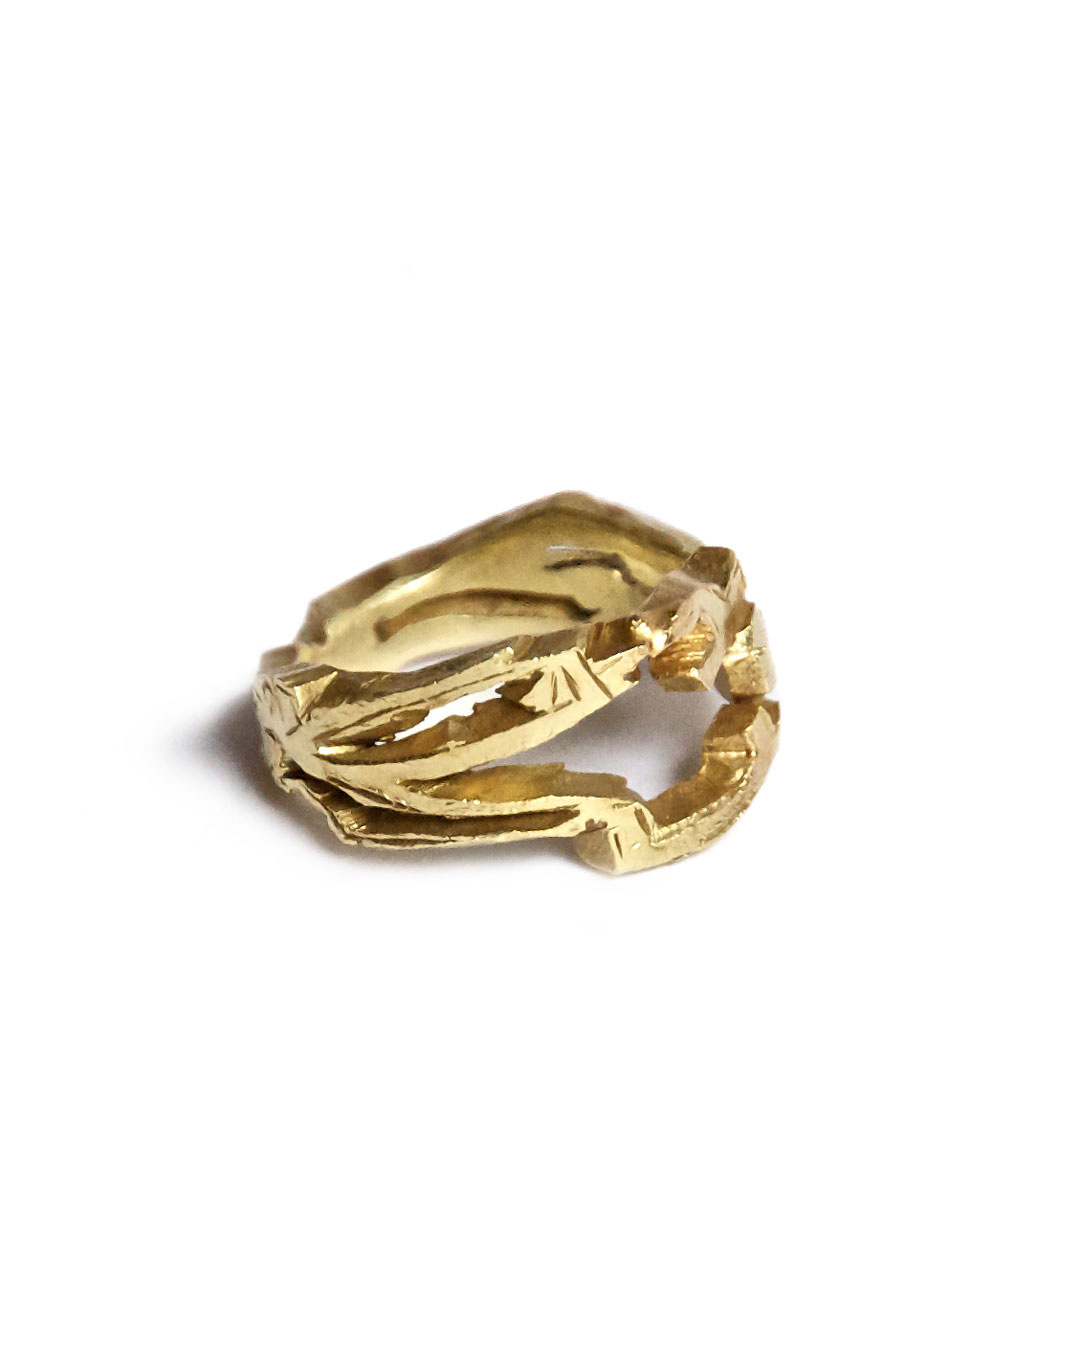 Rudolf Kocéa, Lücke (Hole), 2007, ring; 14ct gold, 23 x 22 x 7 mm, €1940